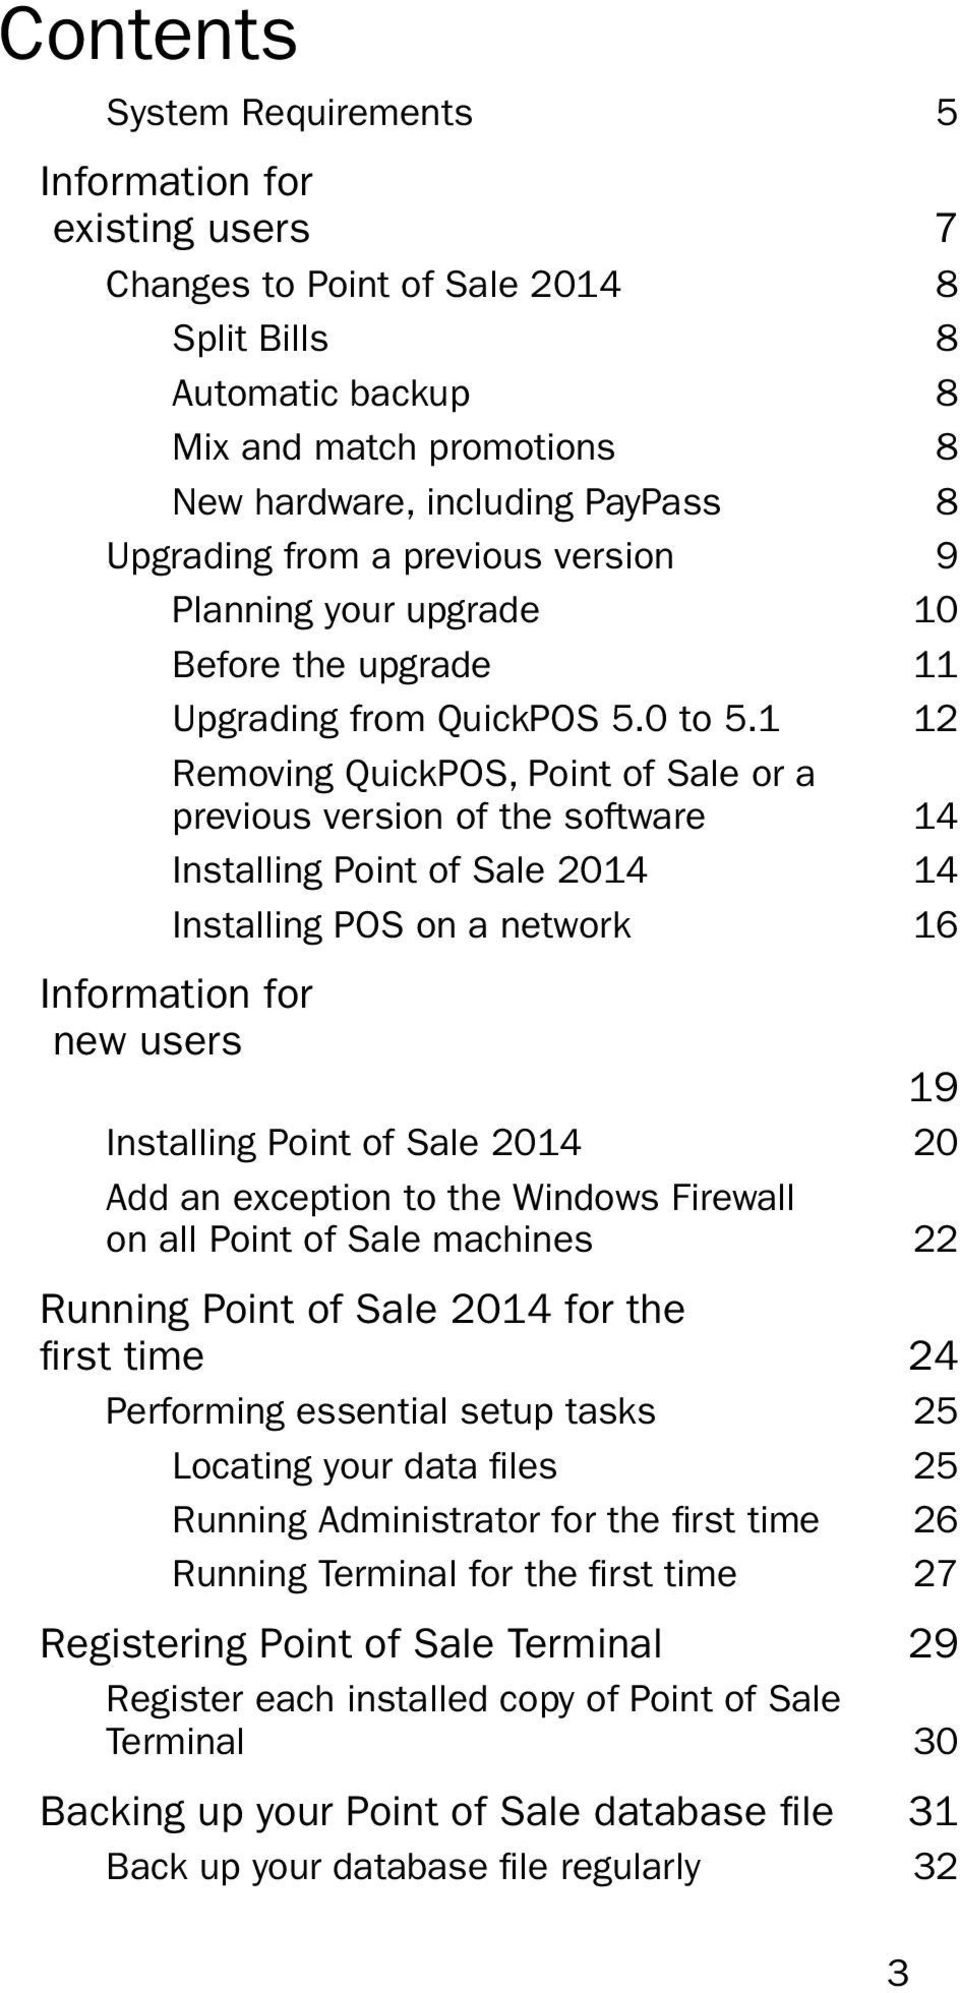 1 12 Removing QuickPOS, Point of Sale or a previous version of the software 14 Installing Point of Sale 2014 14 Installing POS on a network 16 Information for new users 19 Installing Point of Sale